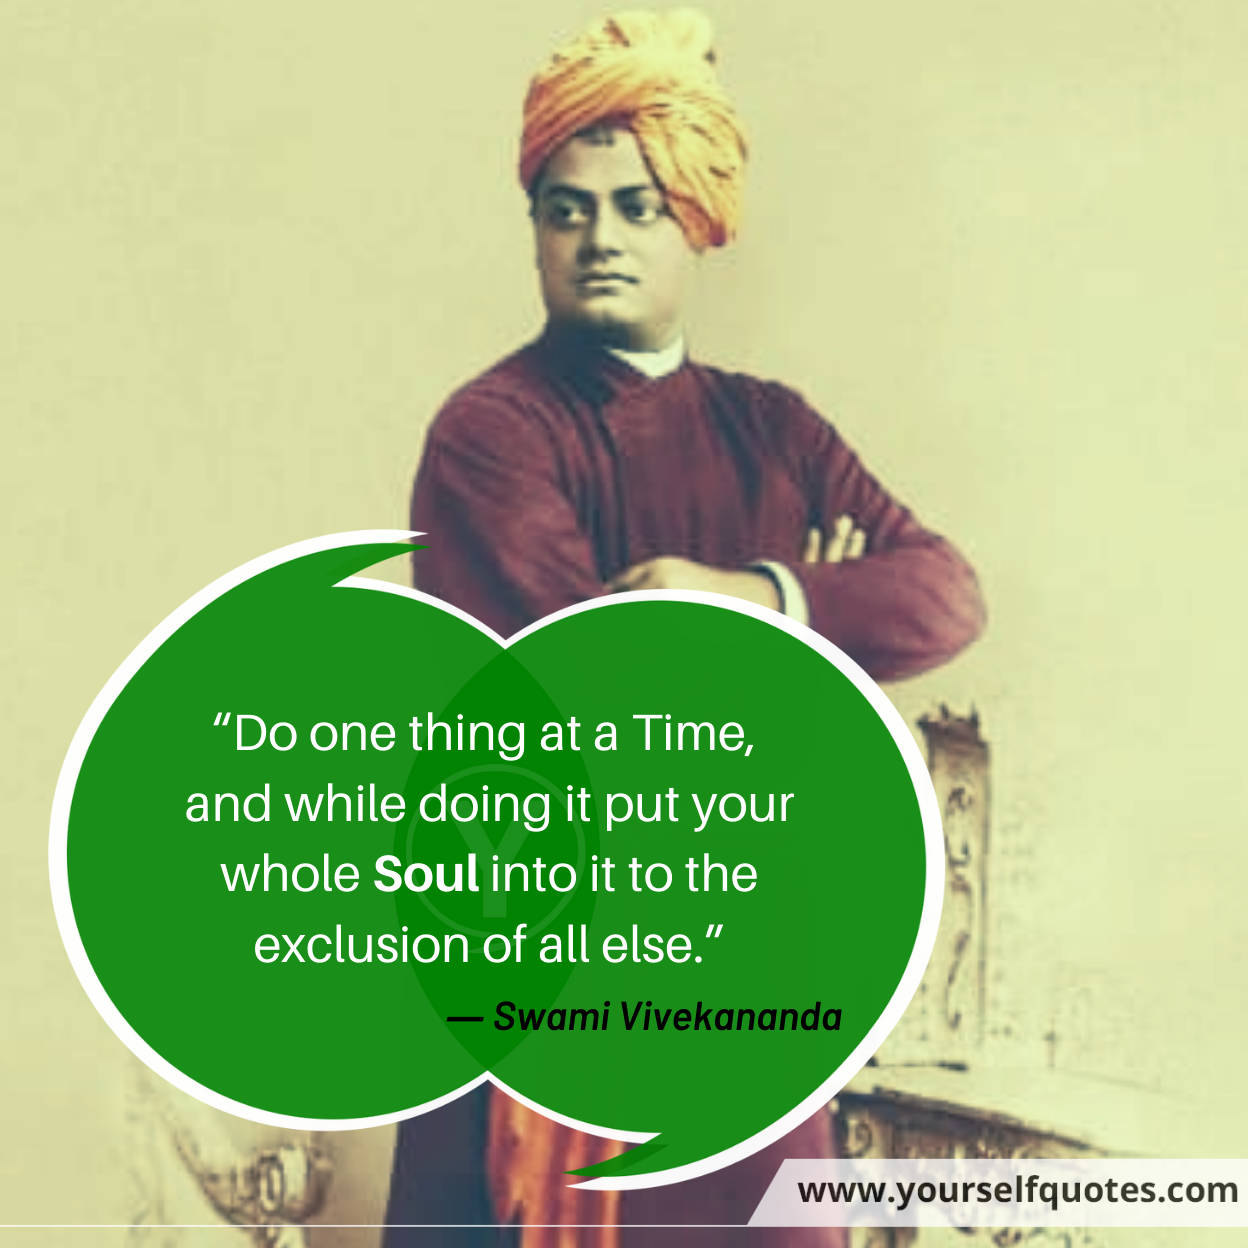 Swami Vivekananda Quotes Inspirational Images